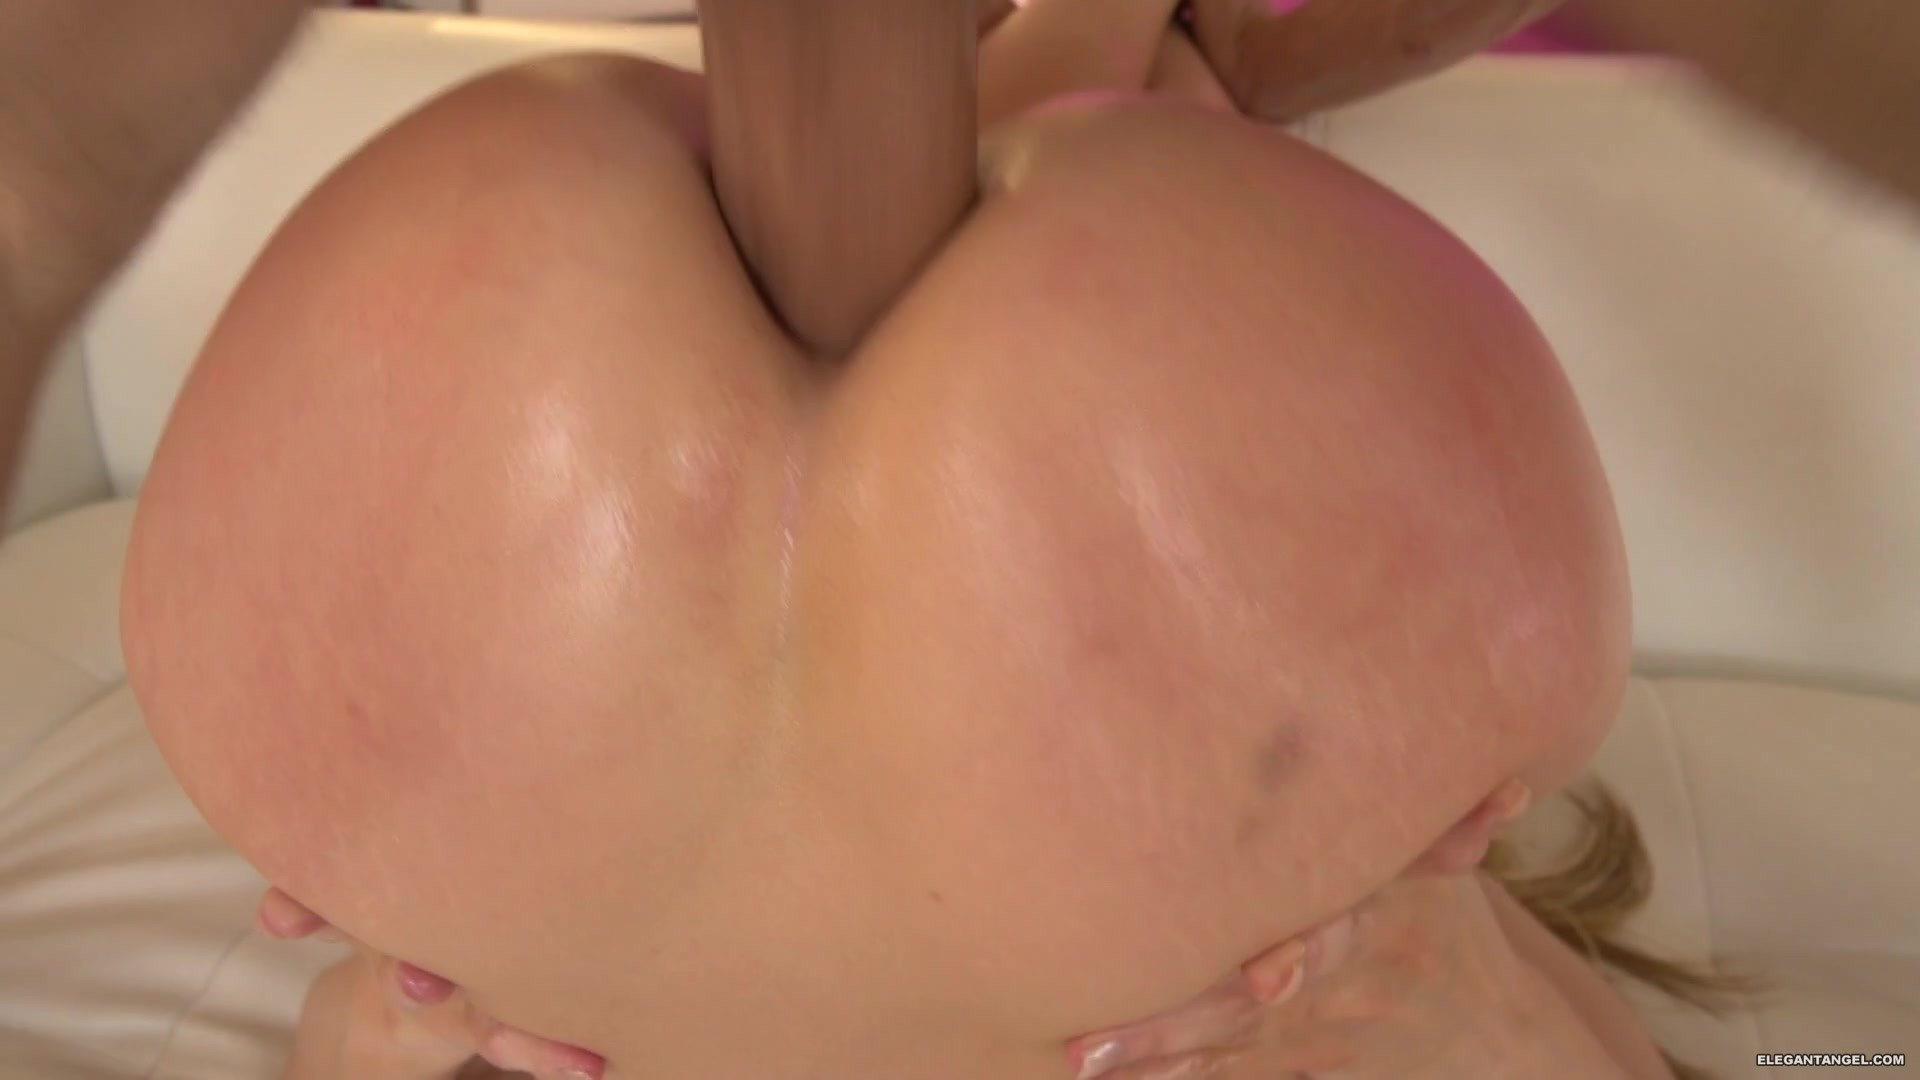 Big wet asses 23 abbey brooks